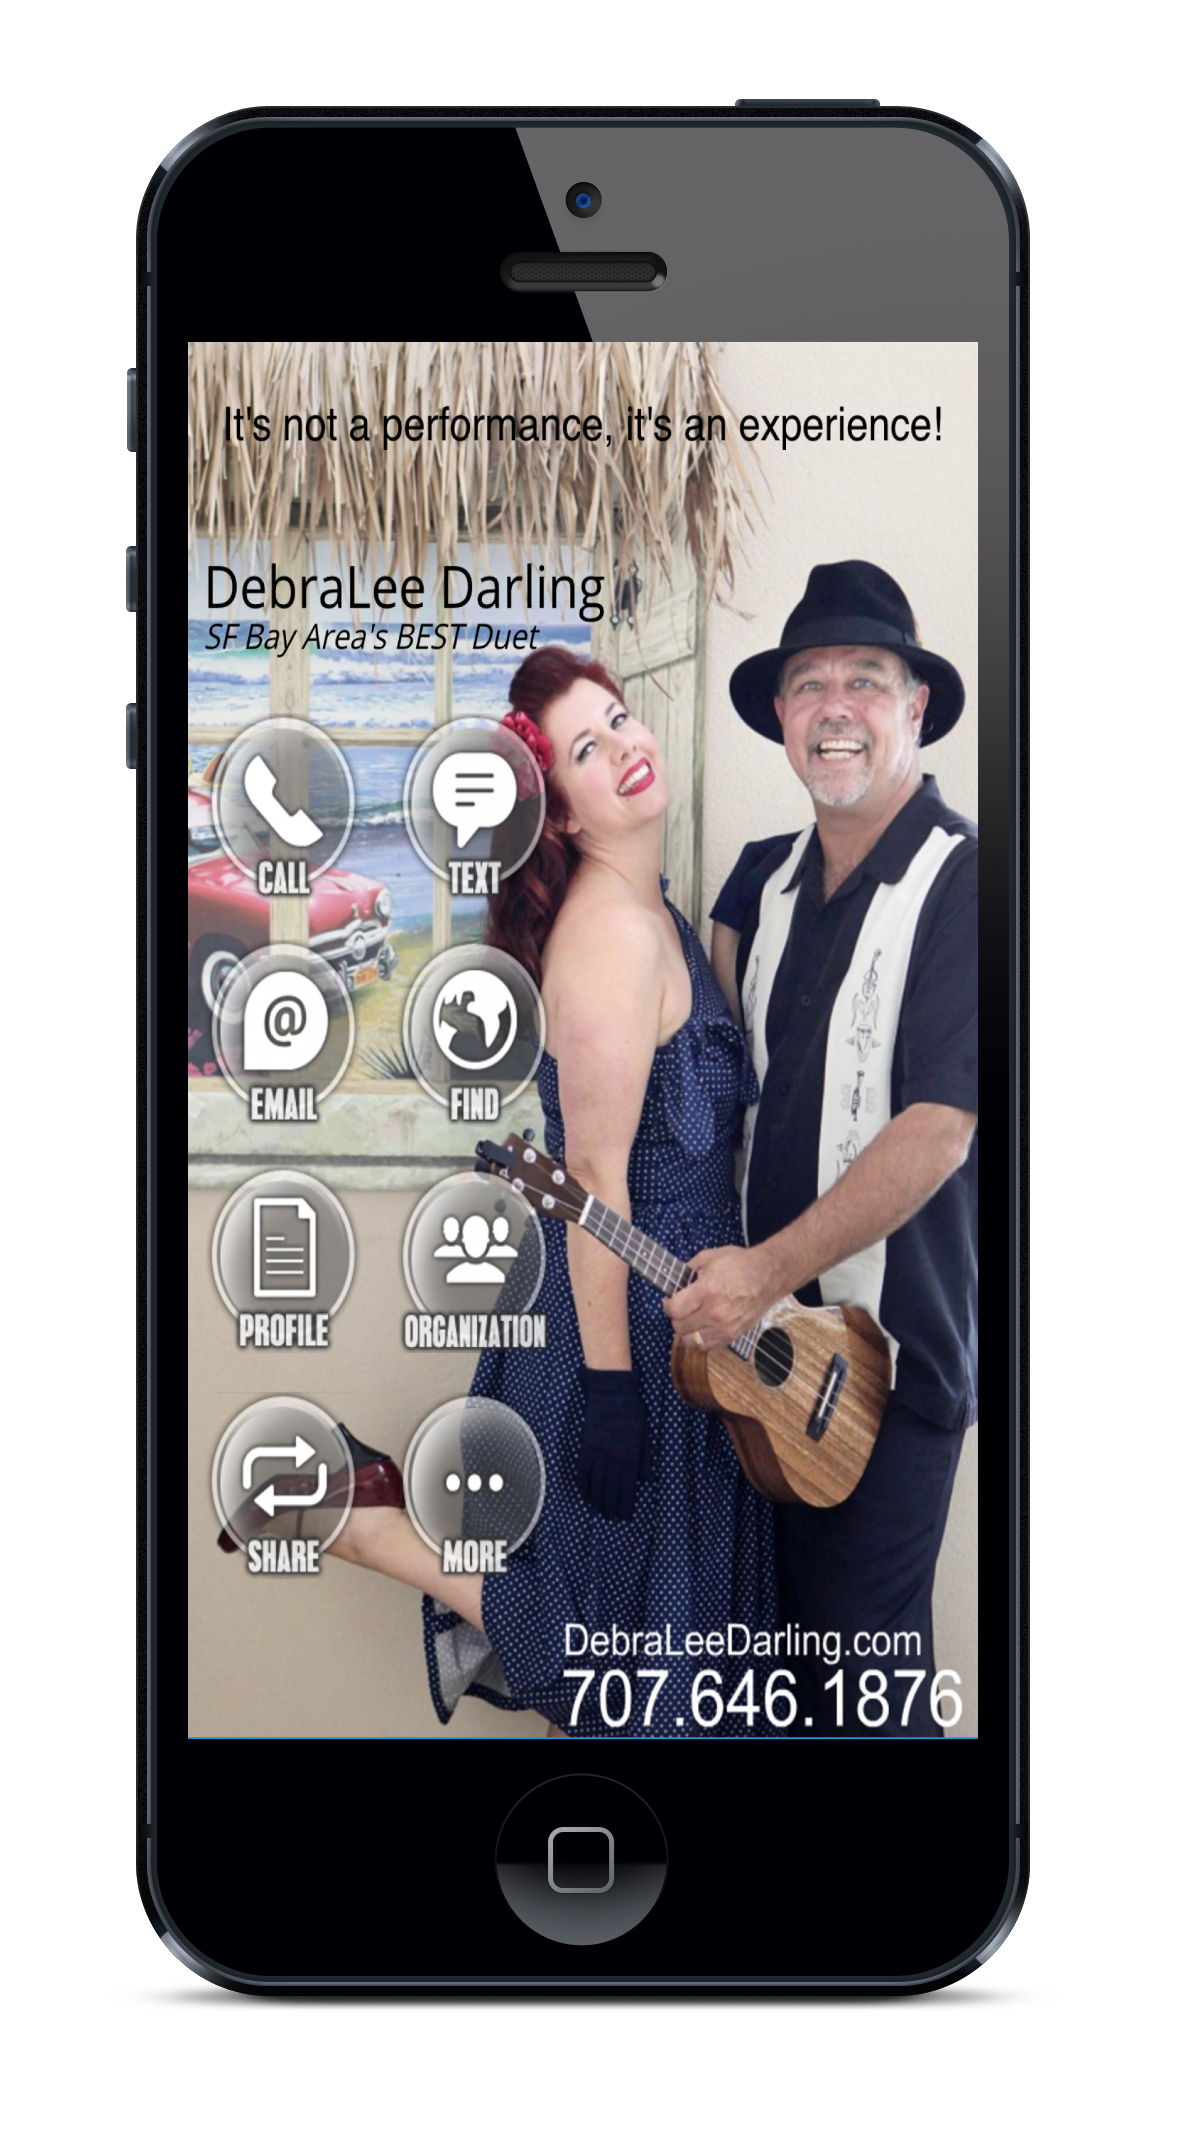 DebraLee Darling Bus Card App